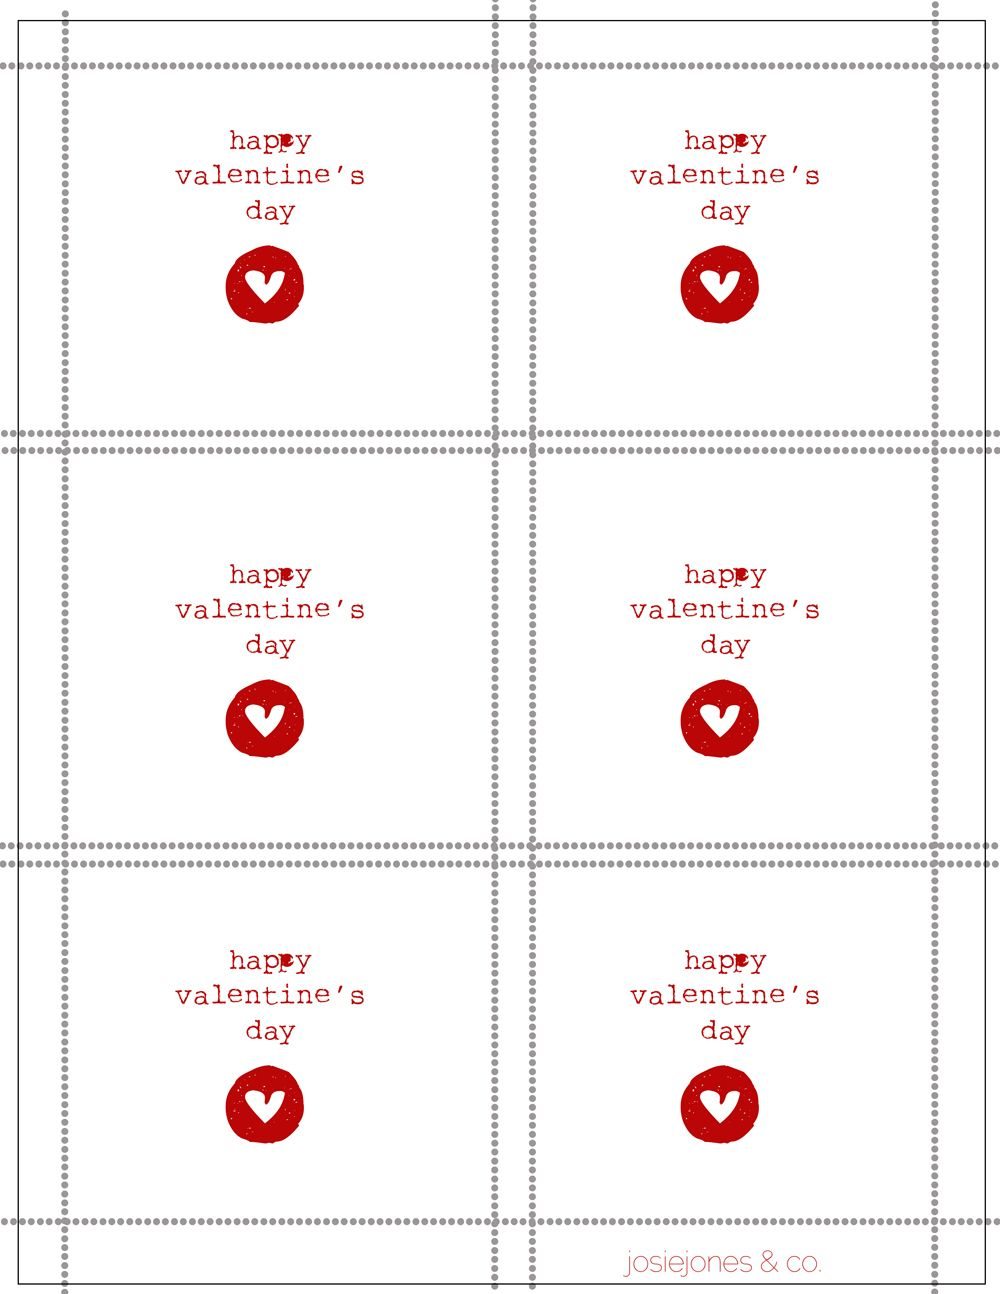 Cute Free Printable Valentines From Josiejones Valentine Card Template Valentines Day Card Templates Valentine Day Cards